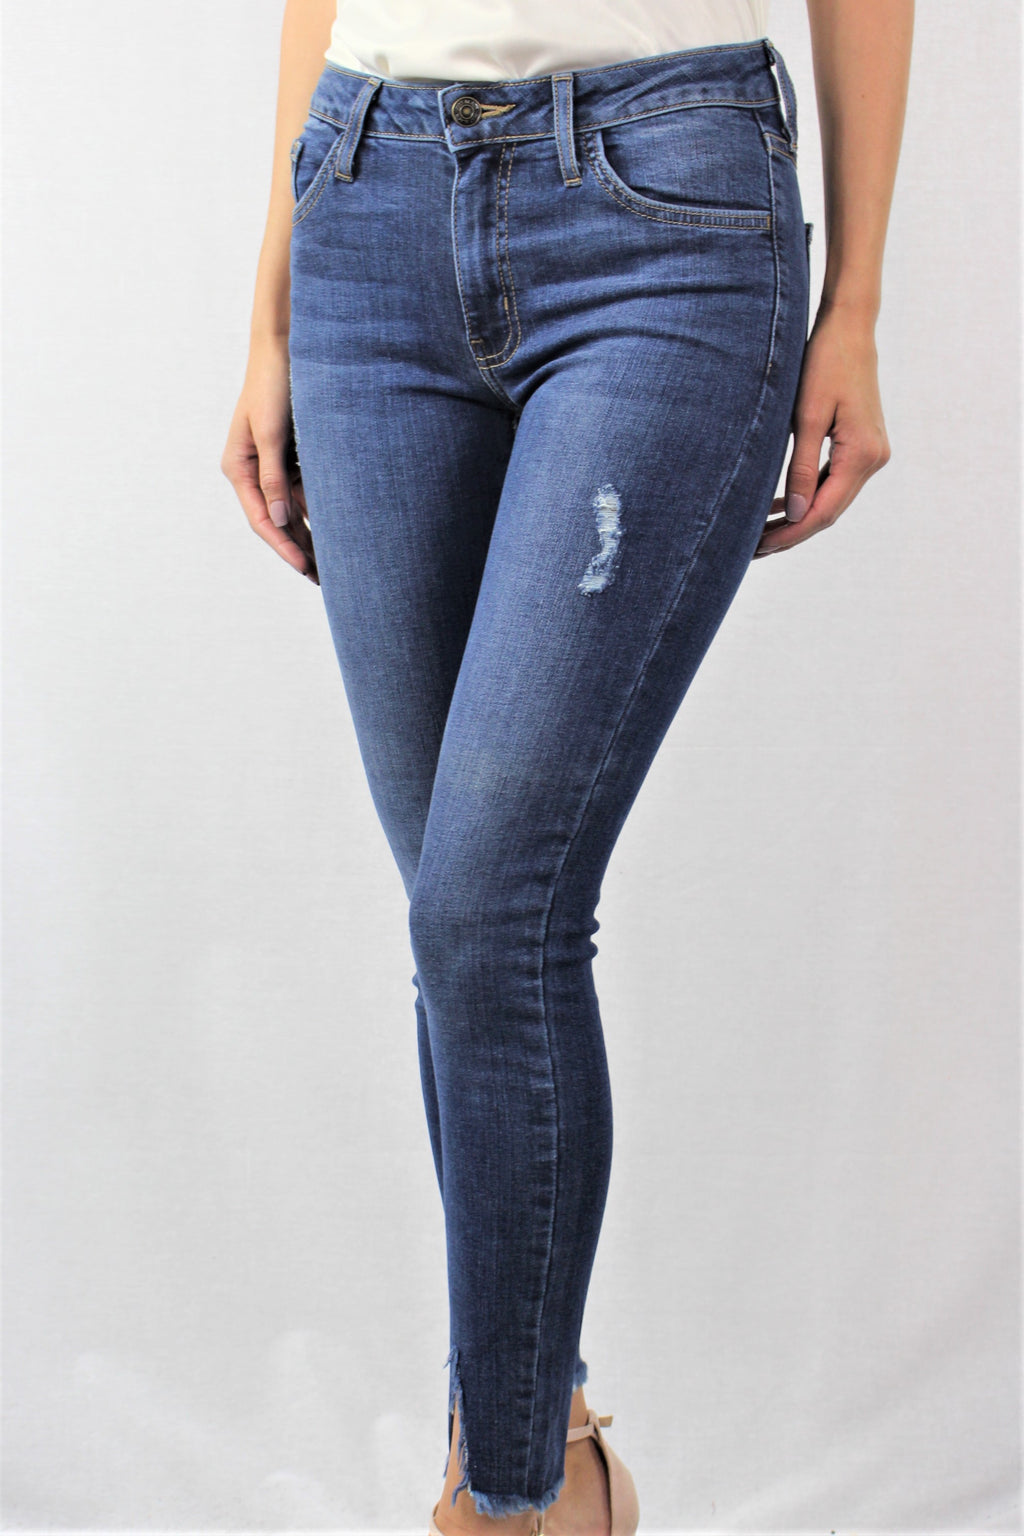 Blue Washed Denim with Shredded Rips